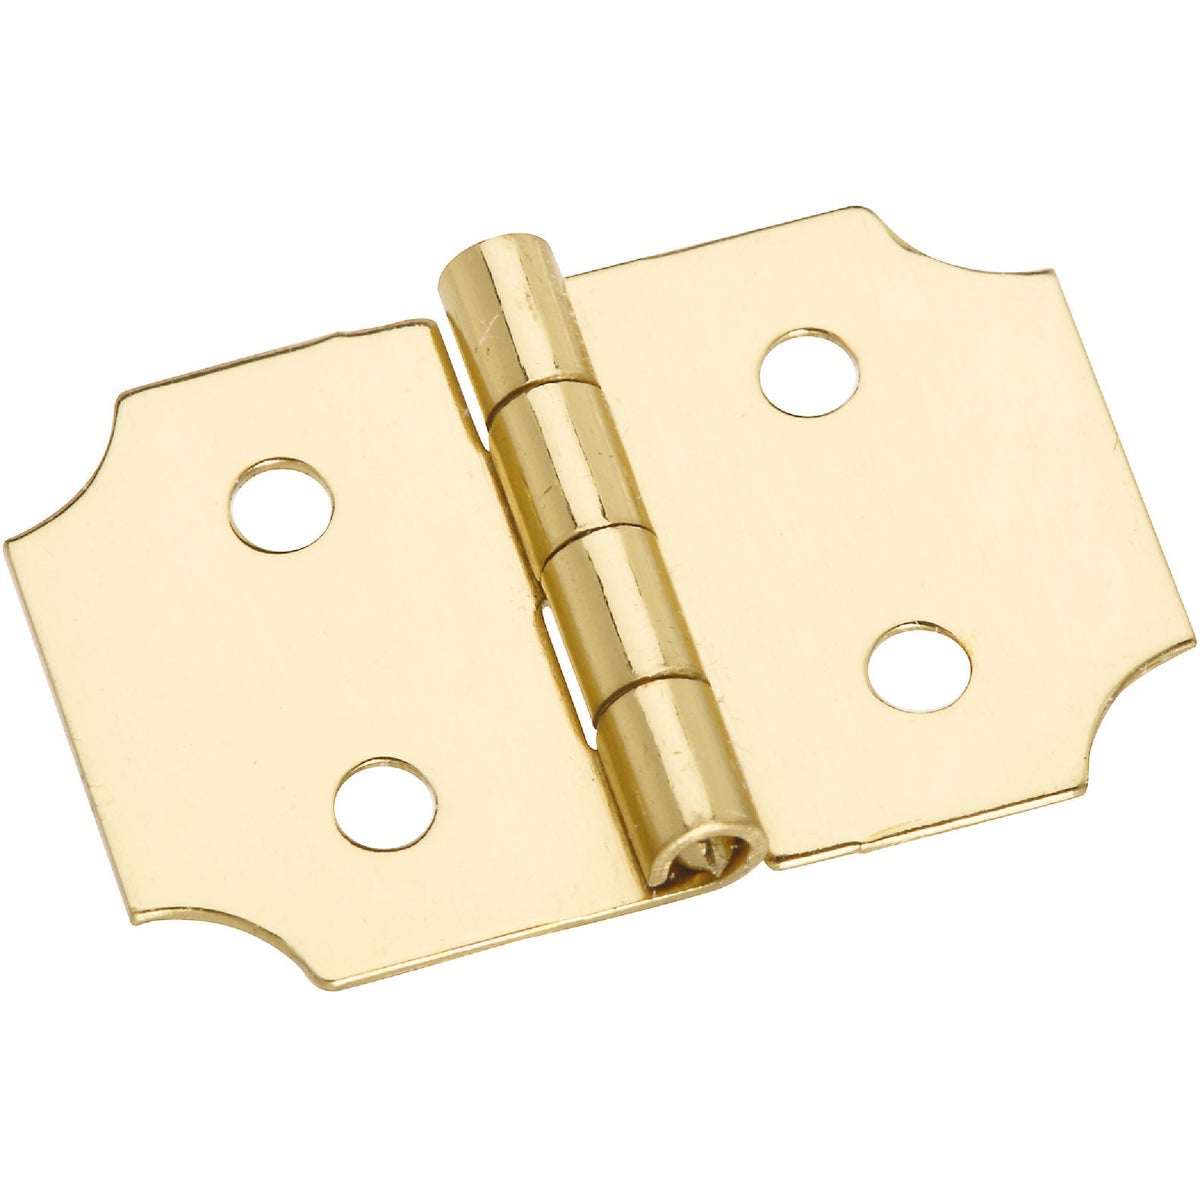 5/8X1 SB DECOR HINGE - N211441 by National Mfg Co